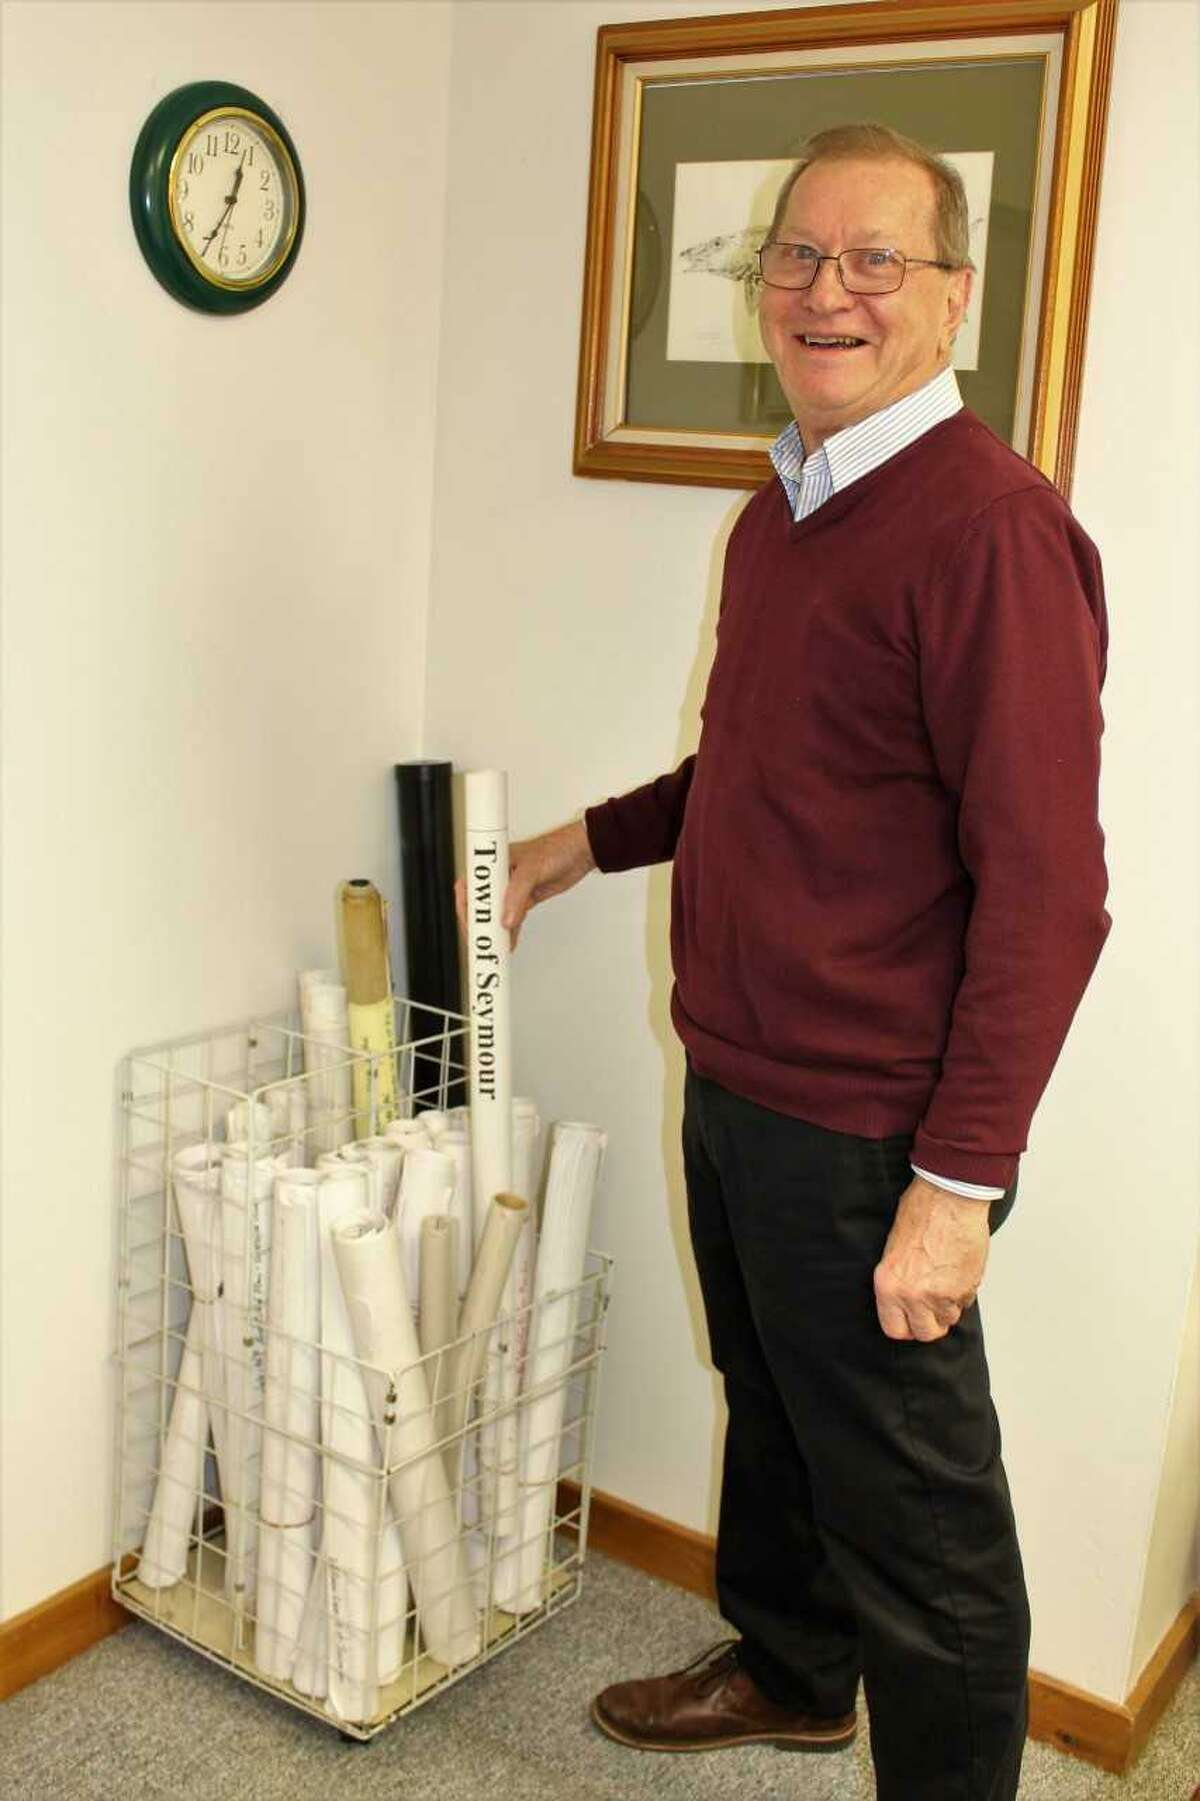 After 50 years, land surveyor Michael Horbal to retire